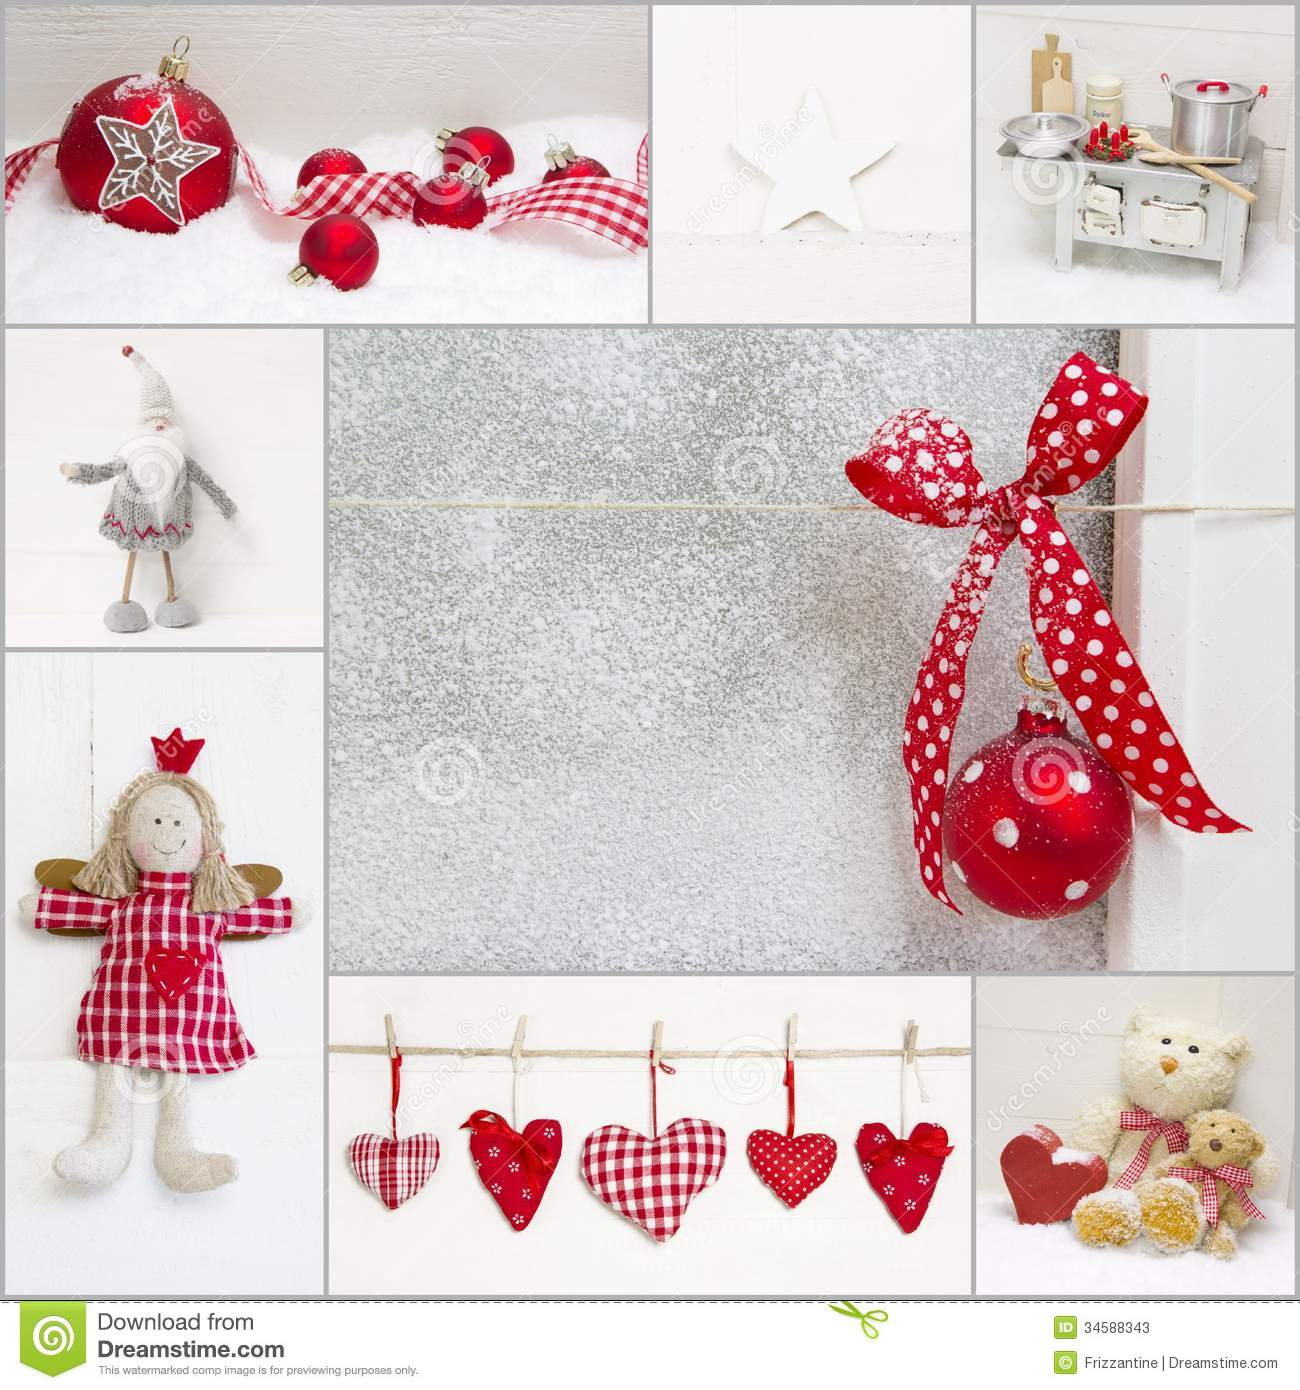 Red and white christmas decorations - Angel Bear Checked Christmas Claus Collage Decoration Heart Red Santa Teddy White